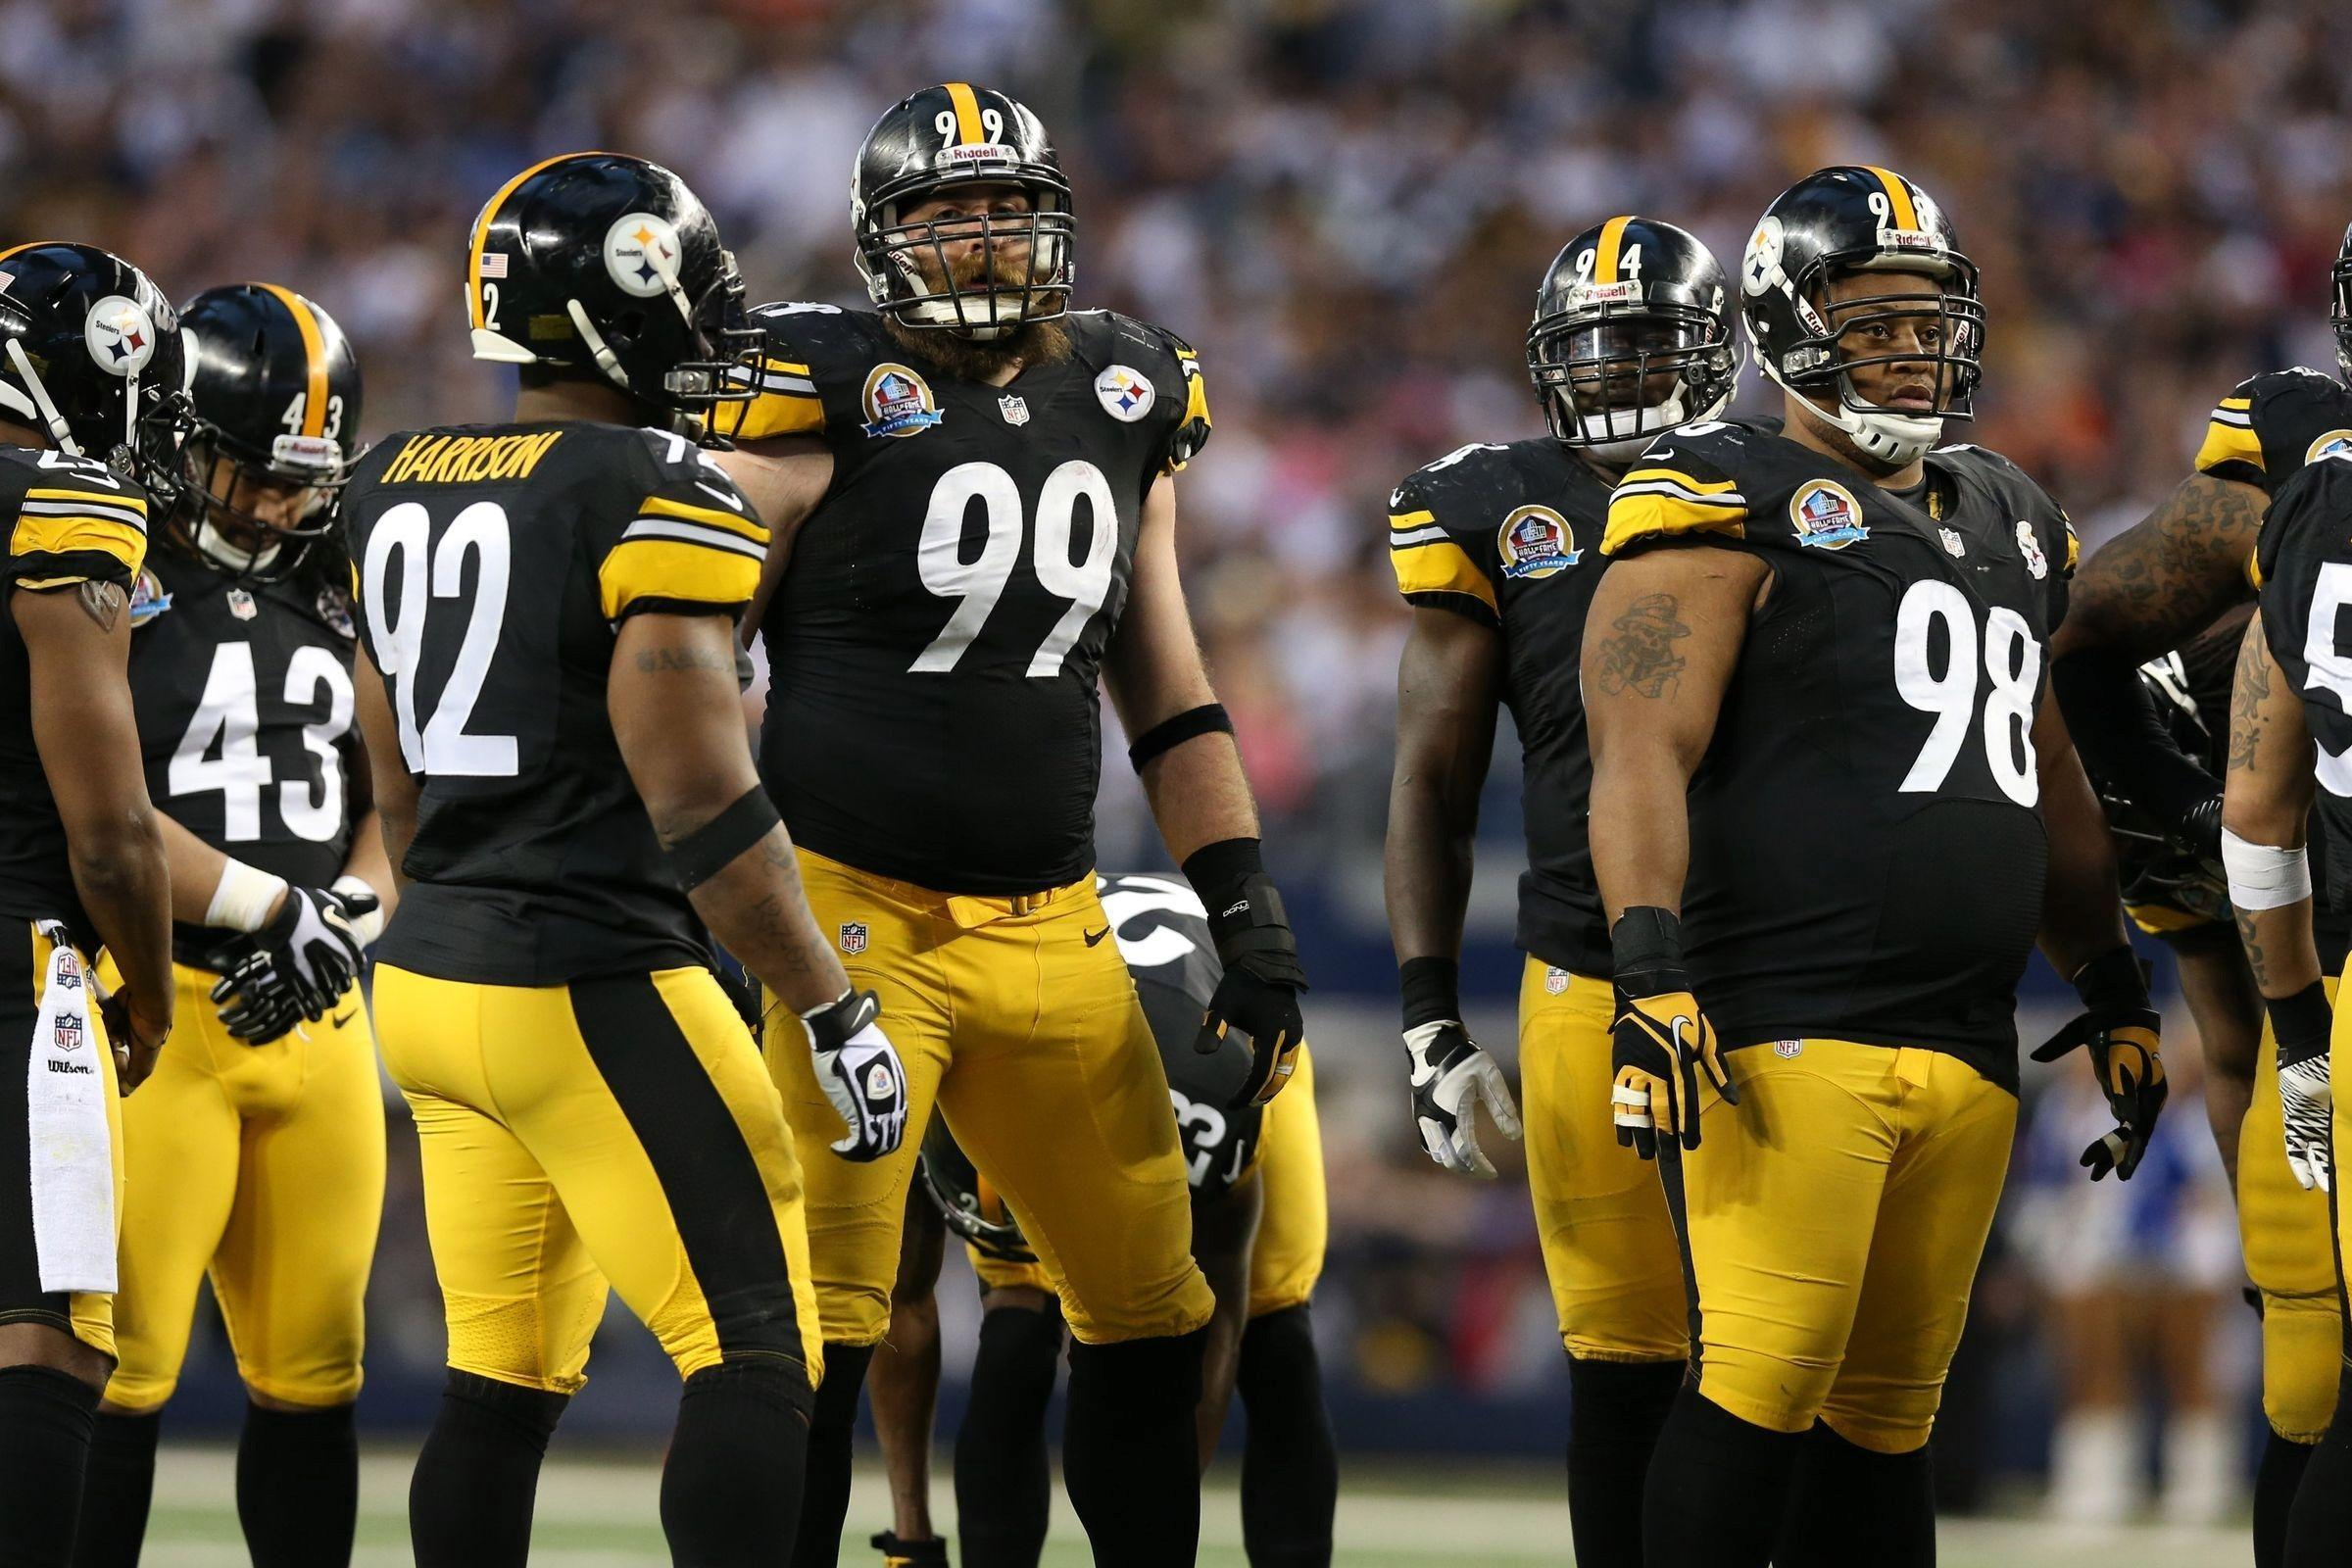 HQ Definition Wallpaper Desktop pittsburgh steelers picture by ...